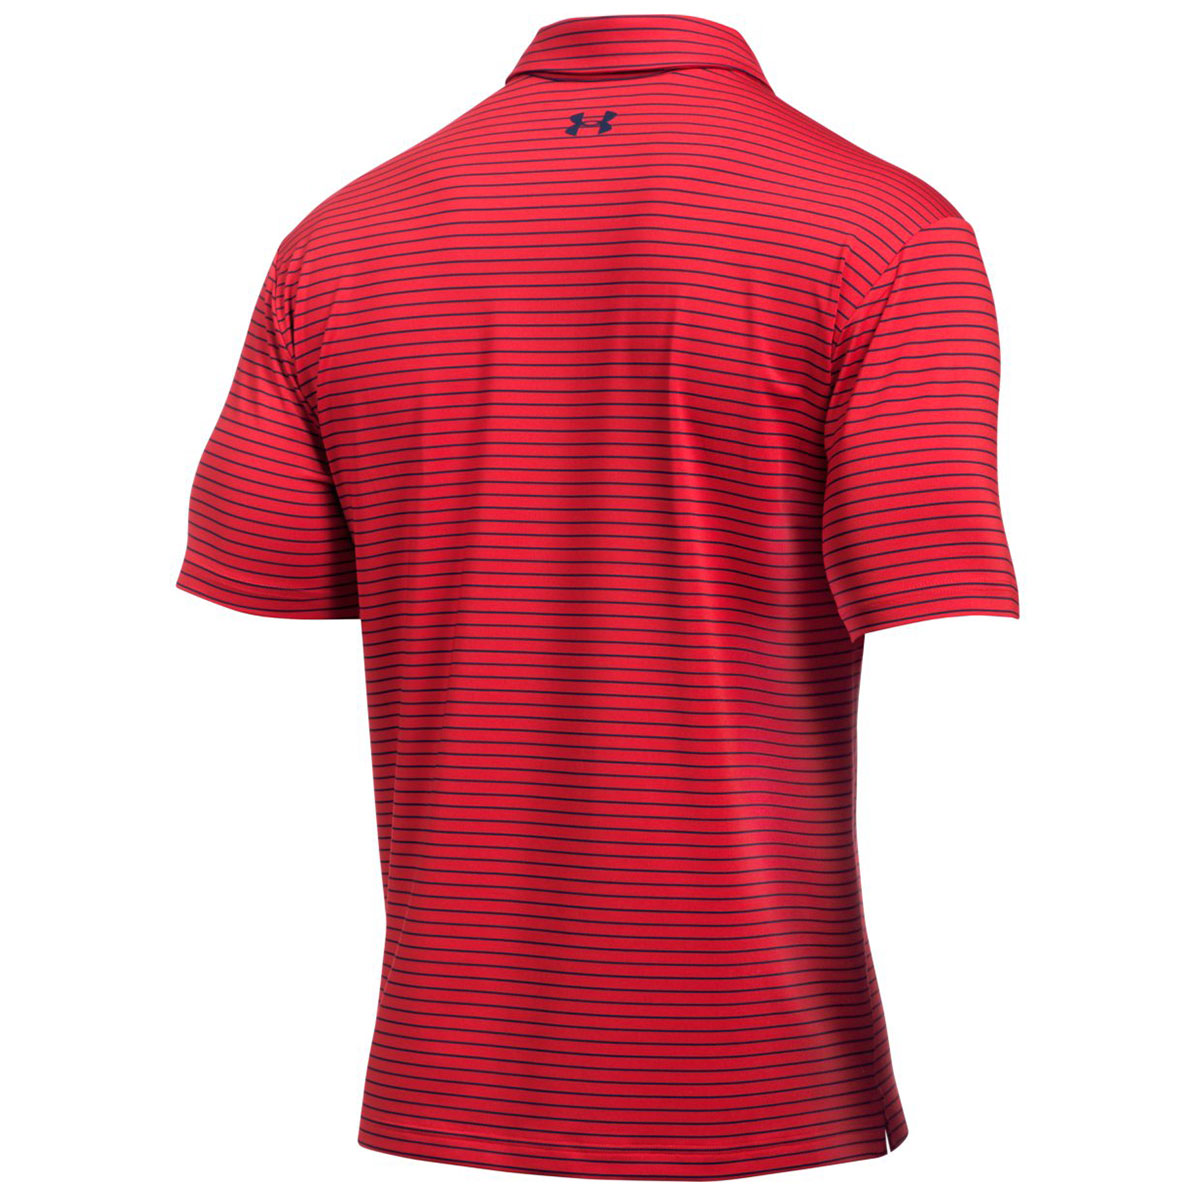 Under-Armour-Mens-UA-Playoff-Performance-Golf-Polo-Shirt-33-OFF-RRP thumbnail 75